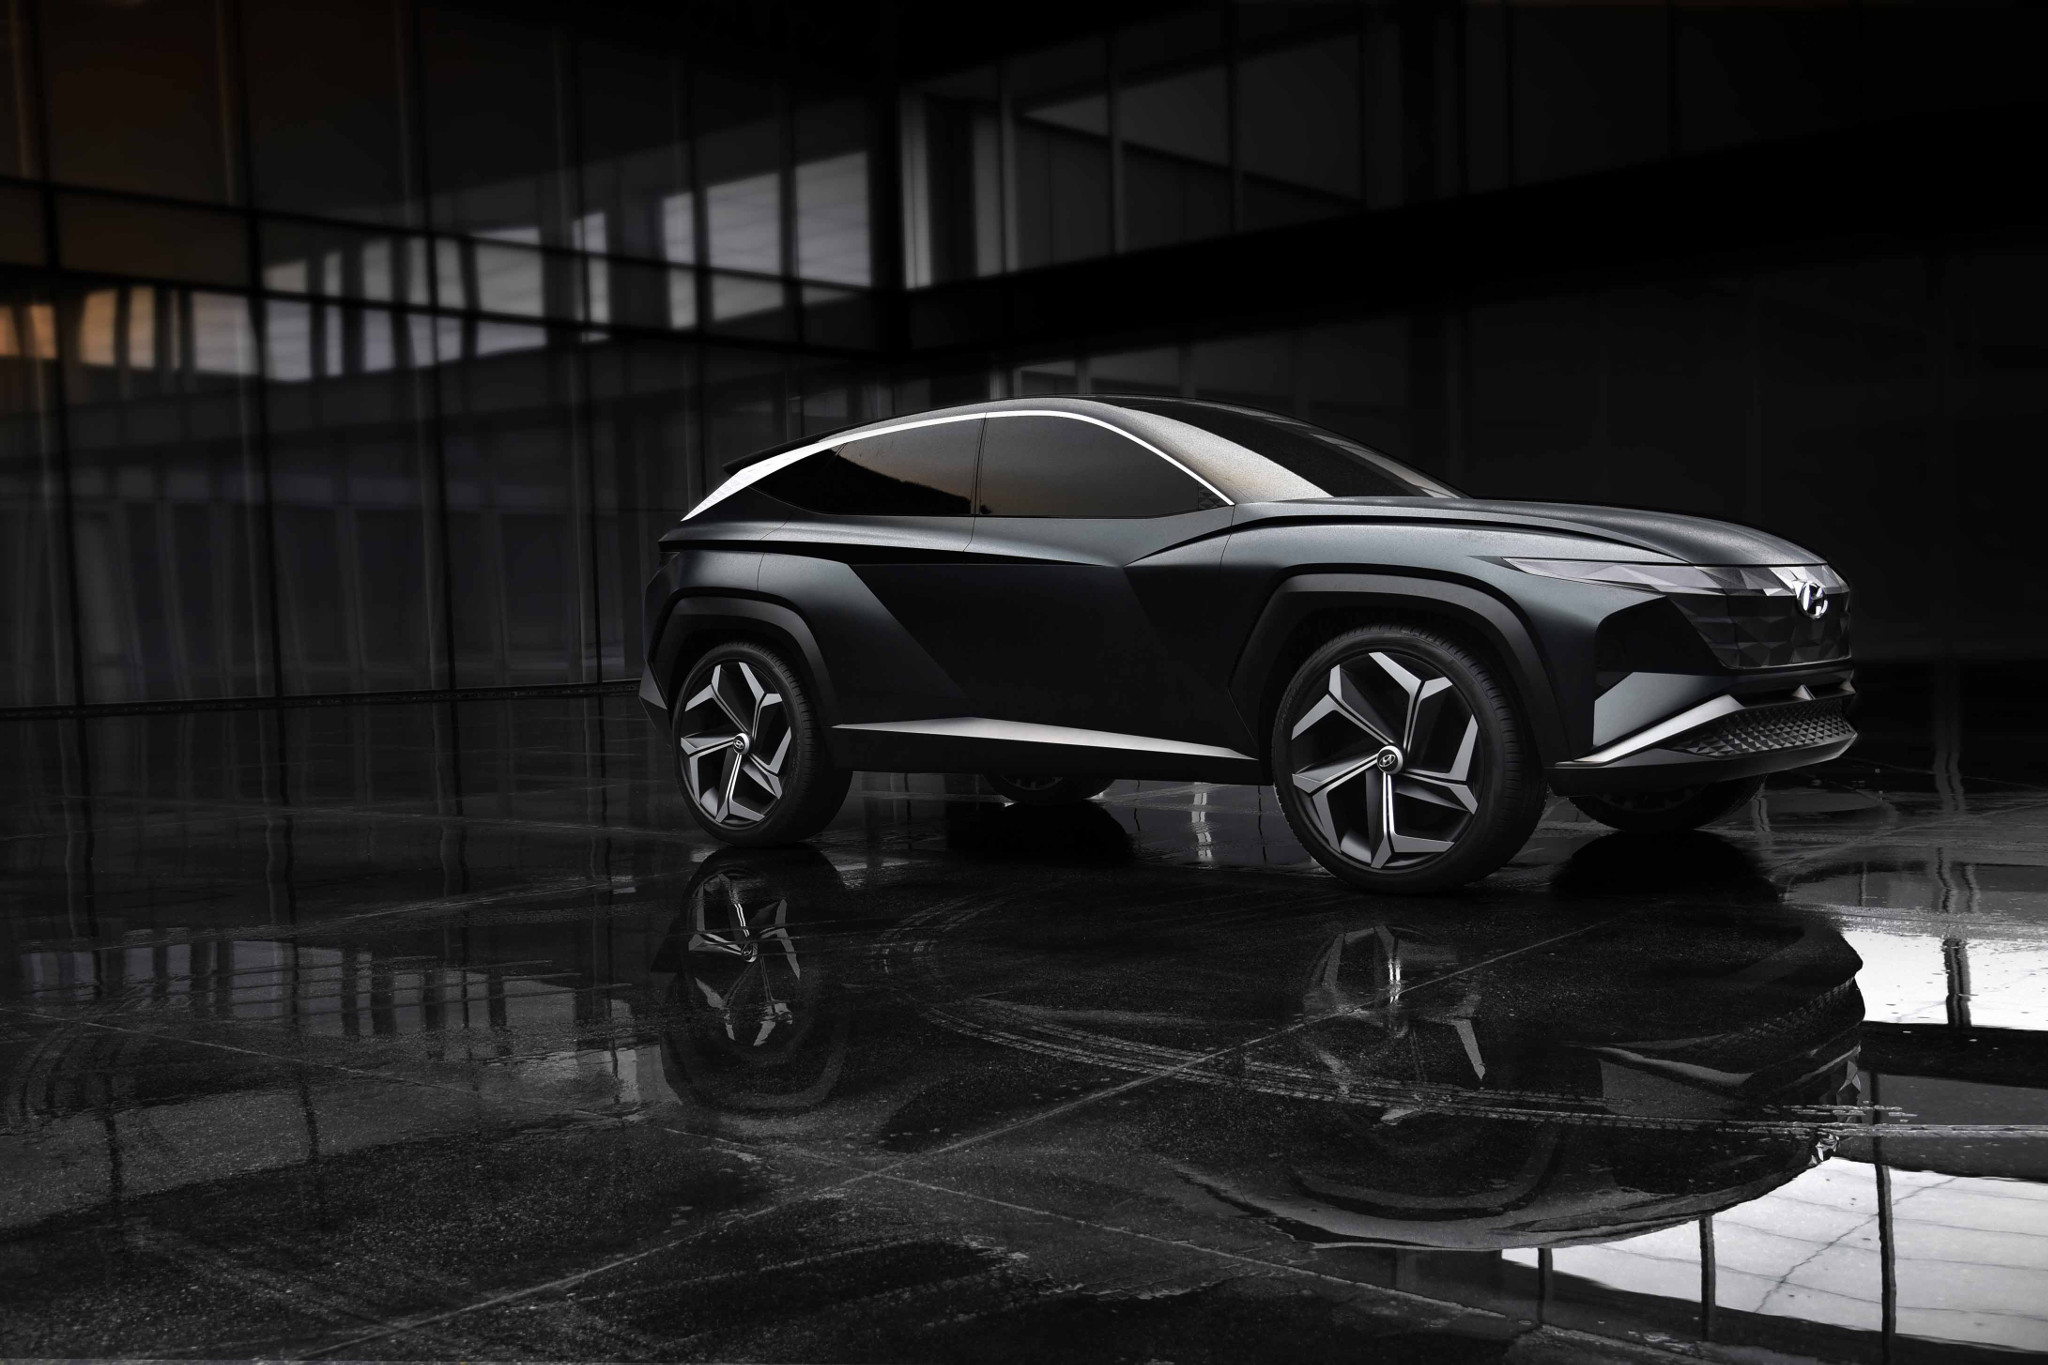 Hyundai Vision T Plug-In Hybrid SUV Concept: A Vision for the Future That's Awesome to a T